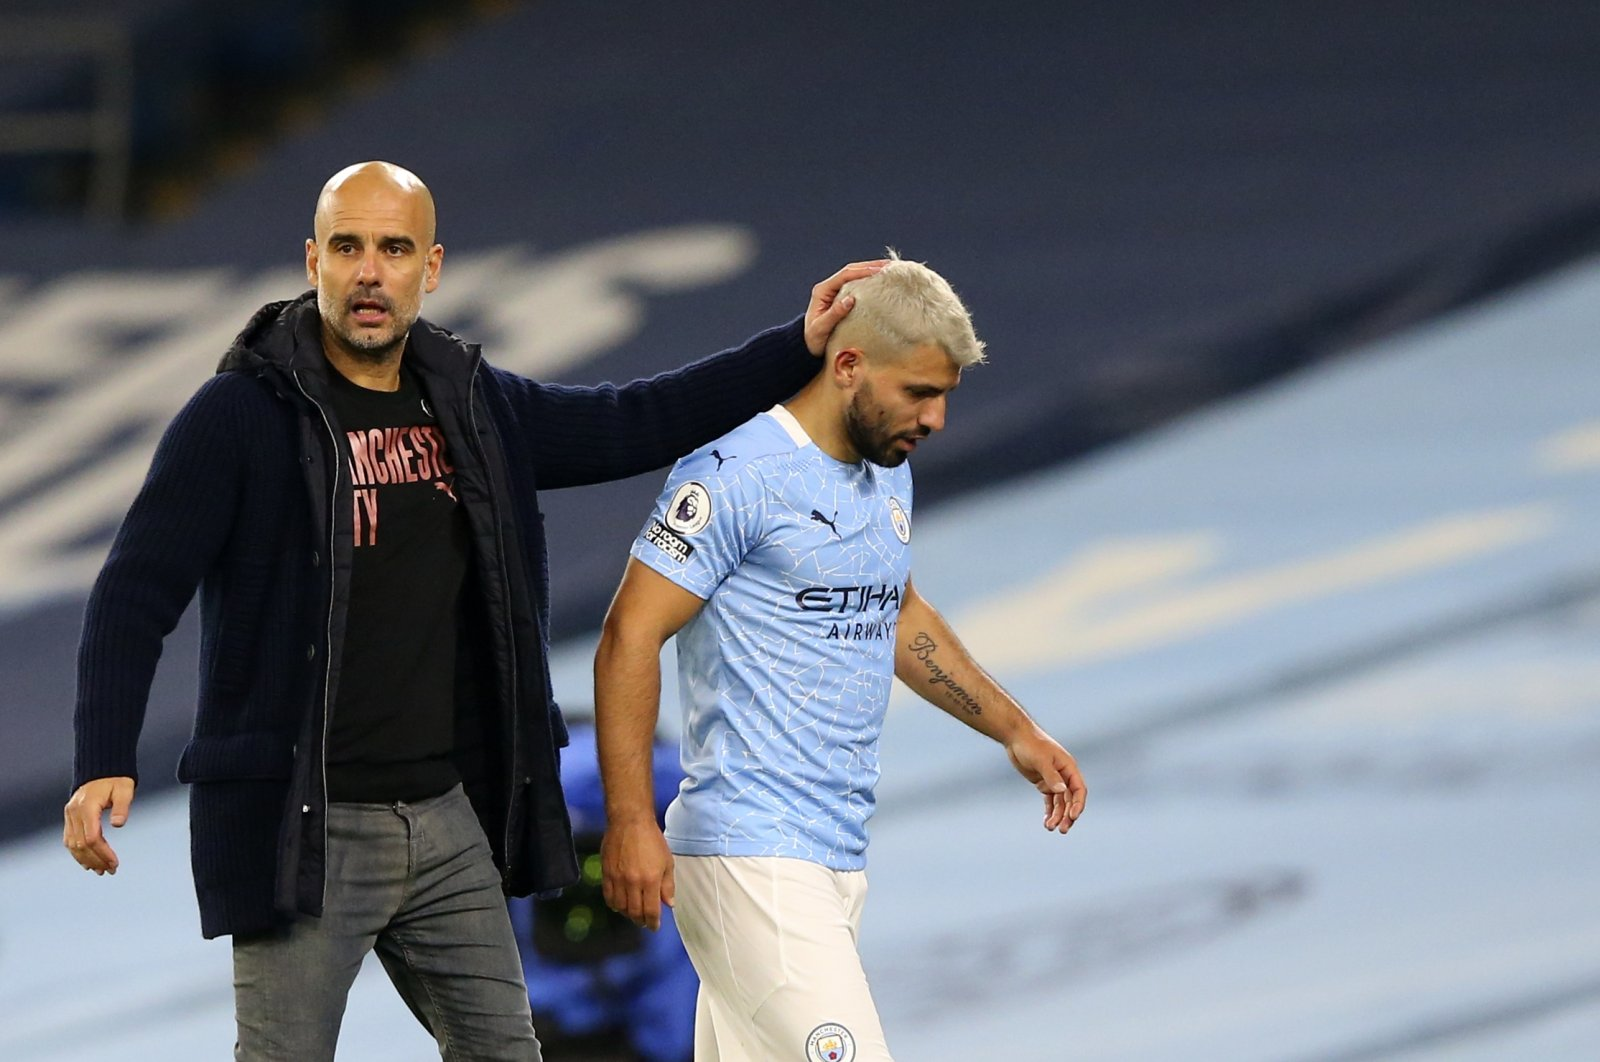 Manchester City coach Pep Guardiola (L) consoles Sergio Aguero after being substituted during a Premier League match against Arsenal, in Manchester, England, Oct. 17, 2020. (AP Photo)